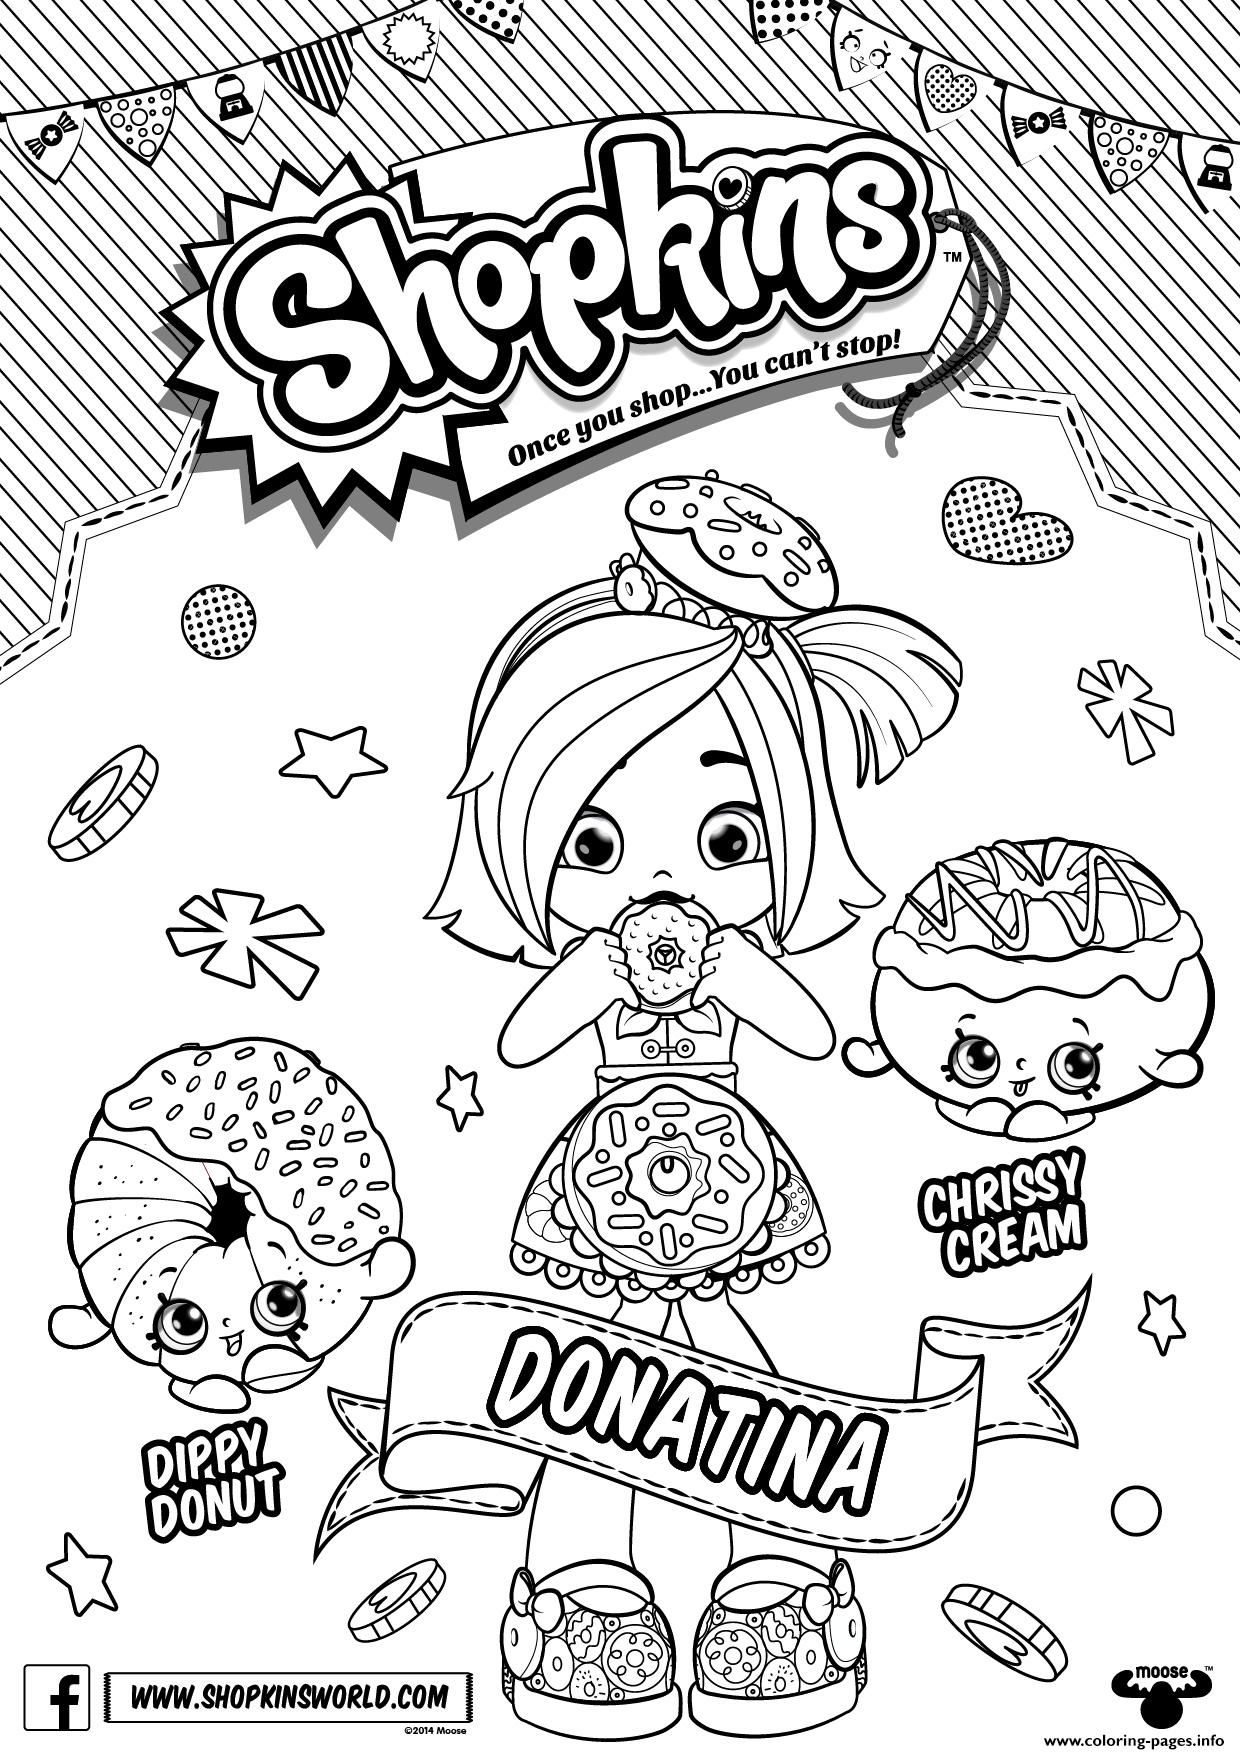 Shopkins color sheets - Print Shopkins Season 6 Doll Chef Club Donatina Coloring Pages